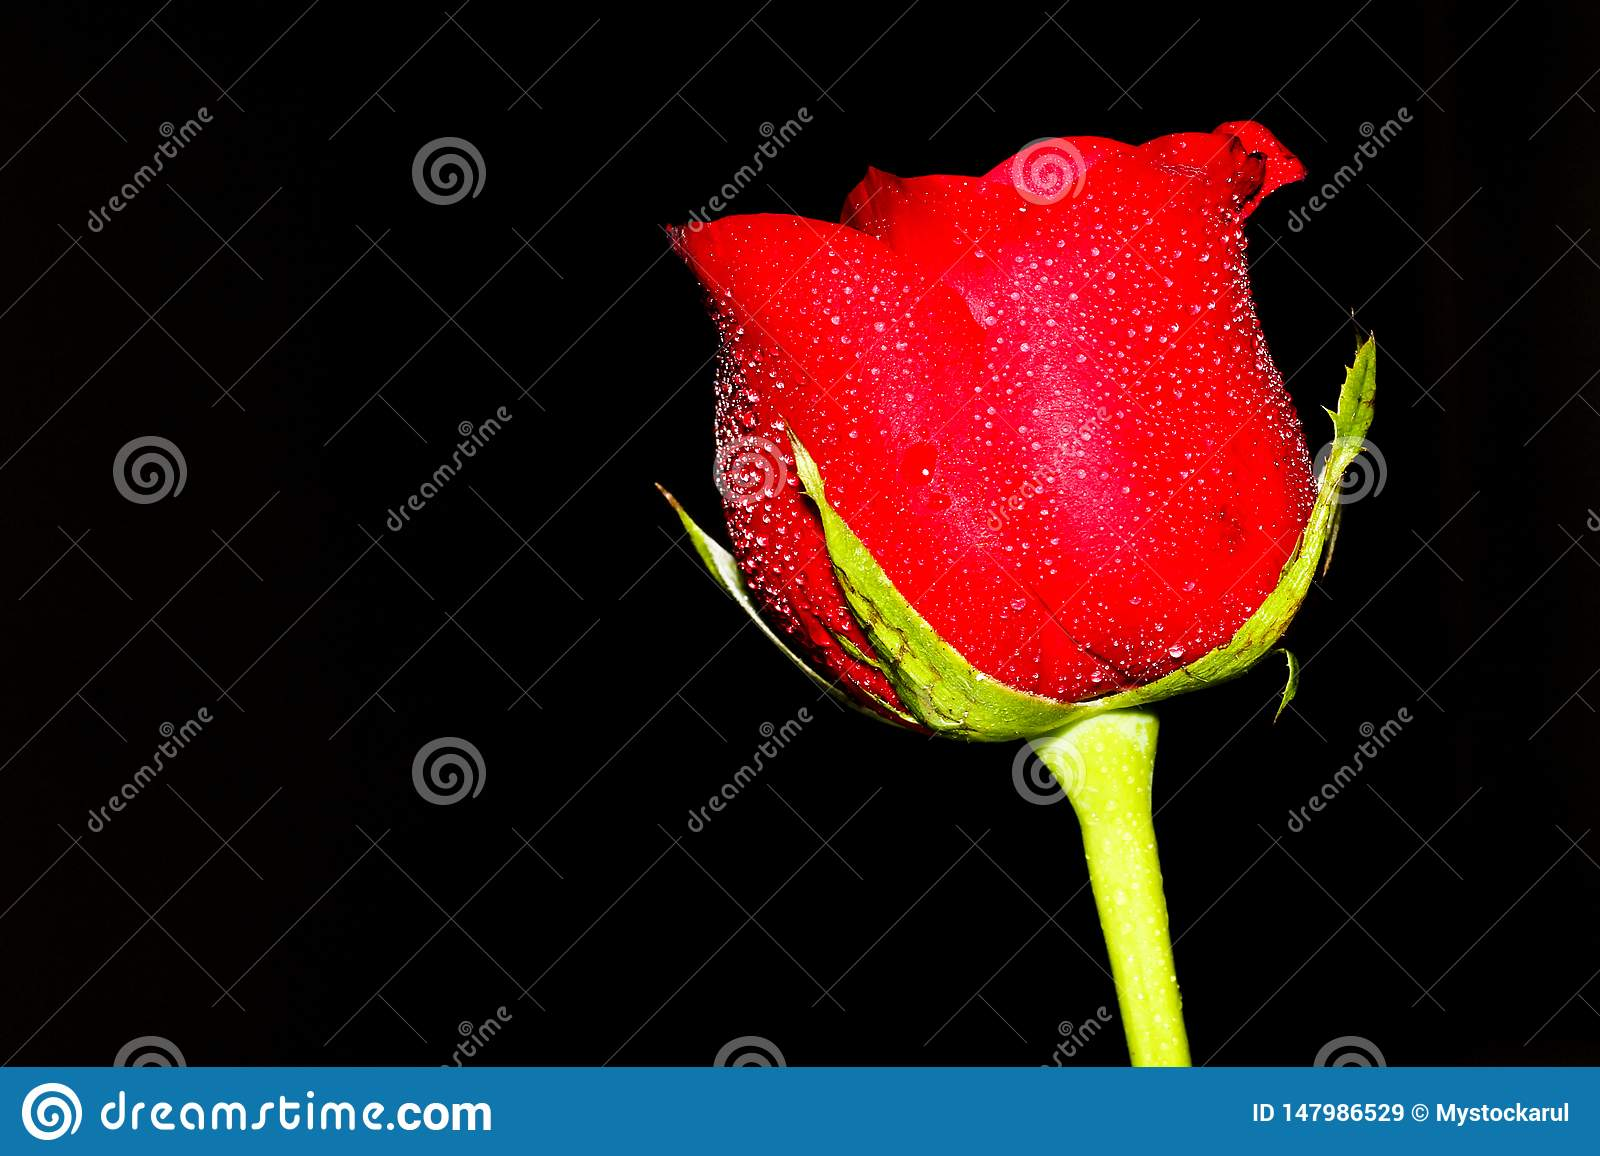 Red Rose low key photography